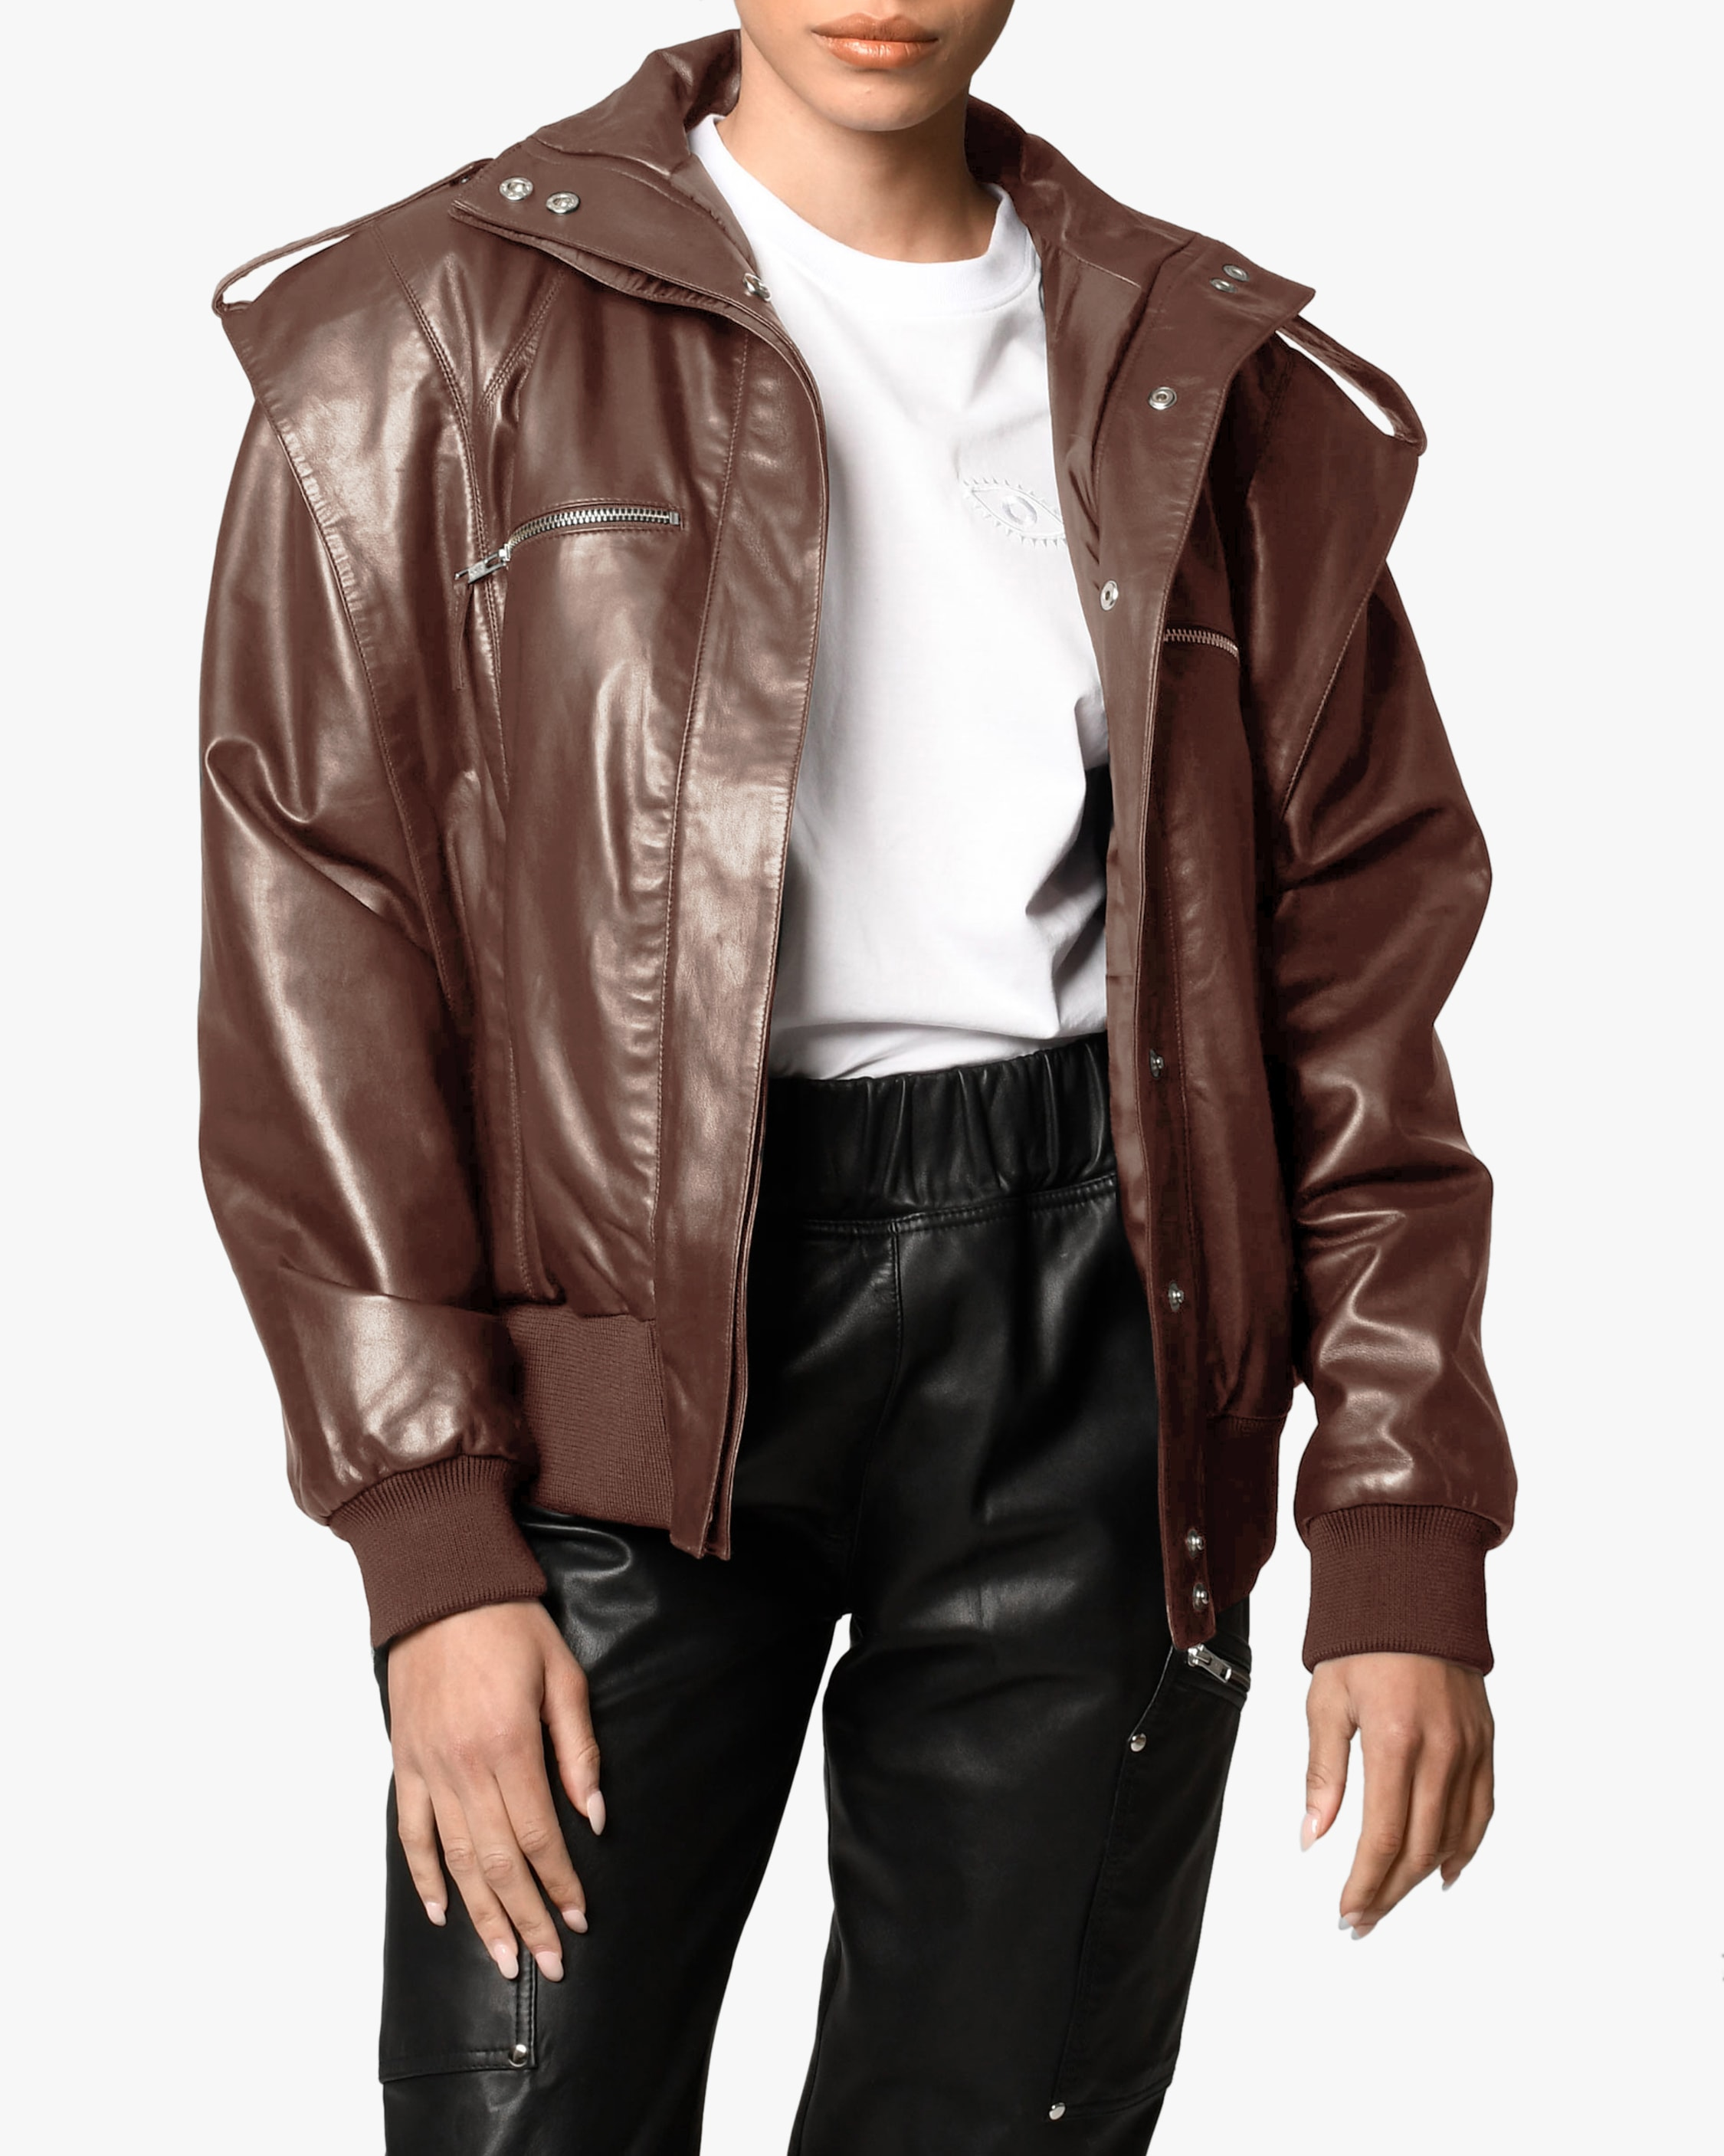 Nicole Miller Space Leather Jacket 1